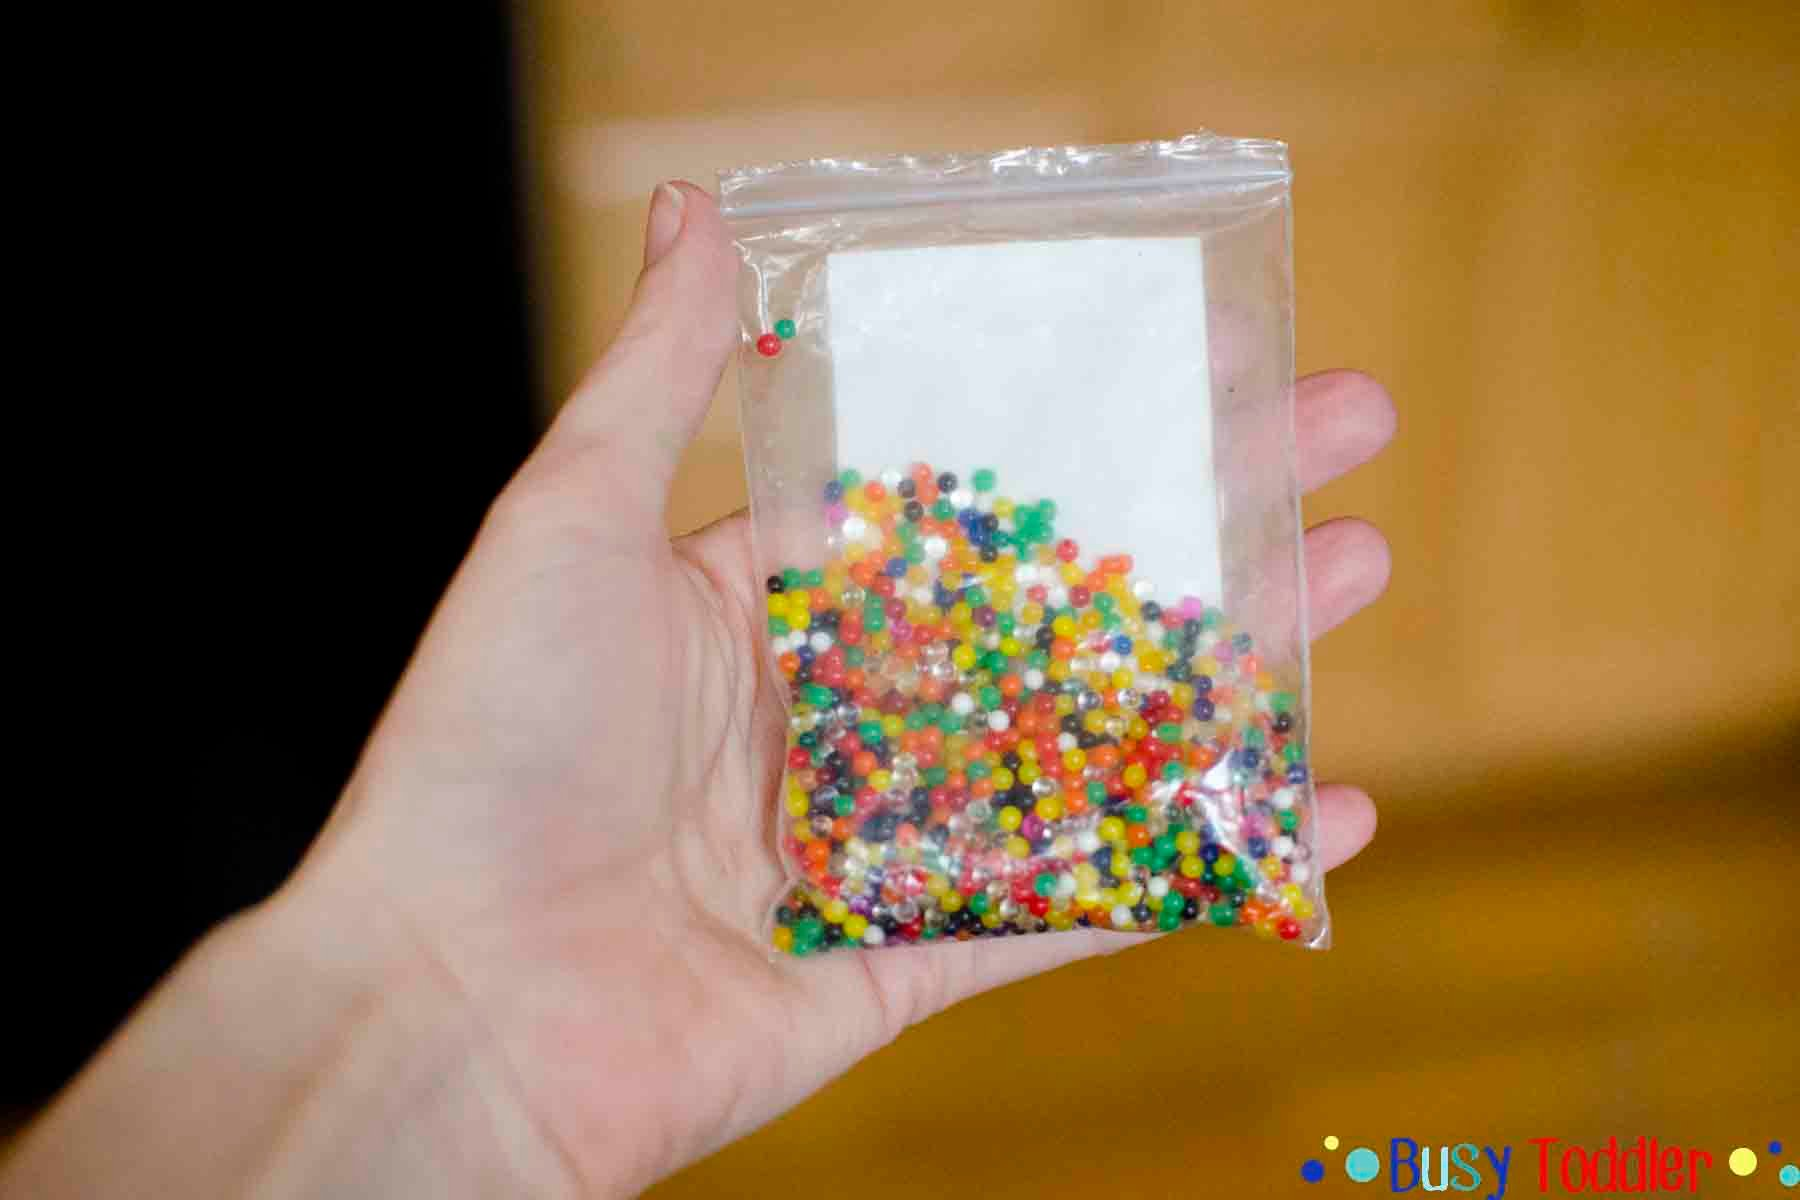 SCOOP AND TRANSFER: A fun toddler activity using water beads